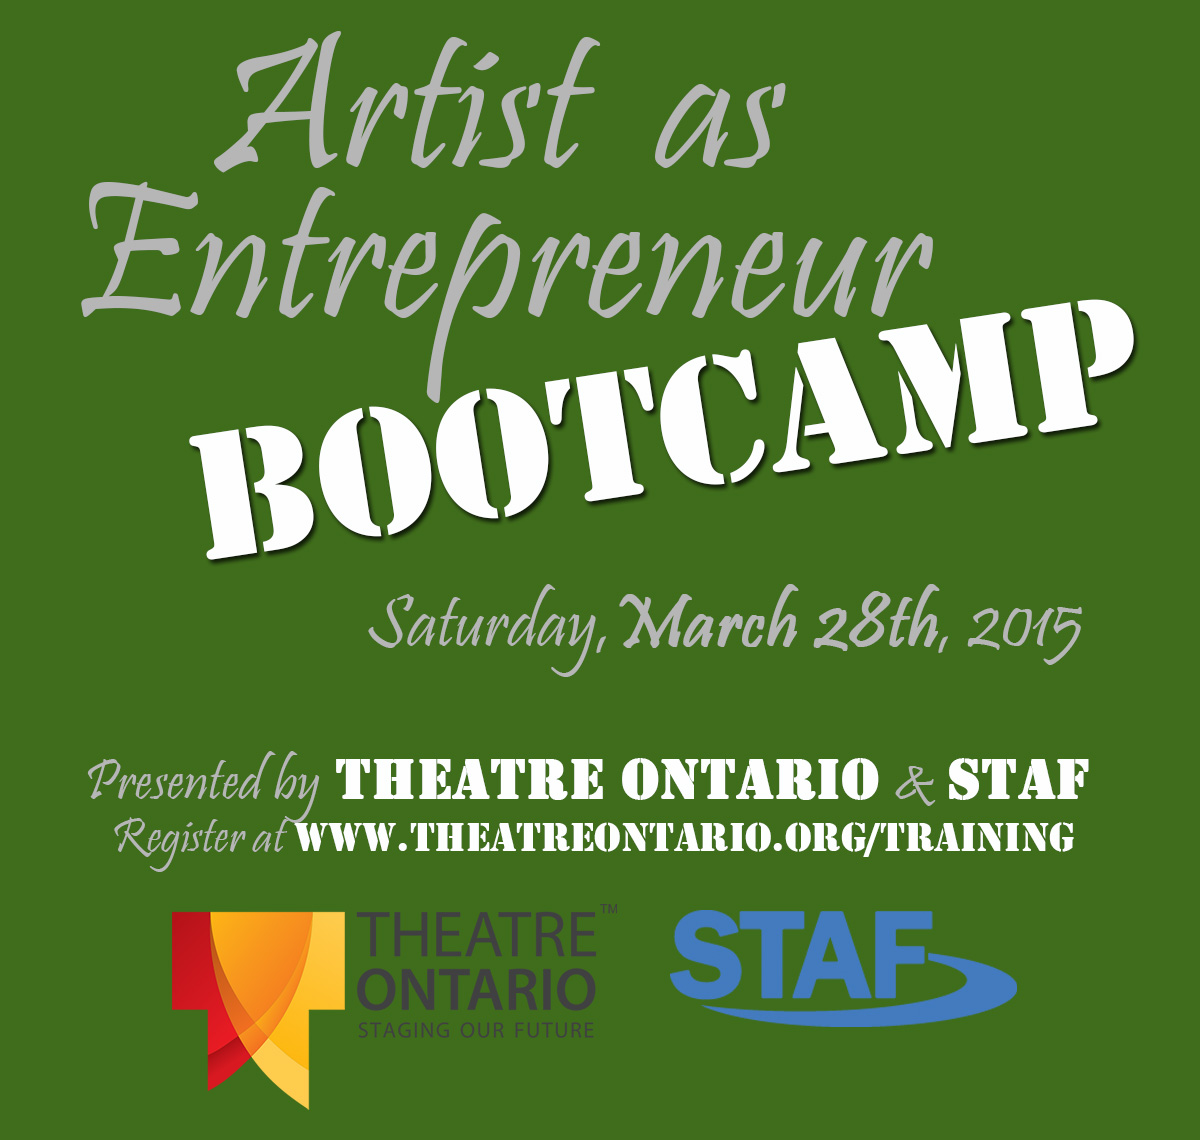 Artist as Entrepreneur Bootcamp –  with Theatre Ontario